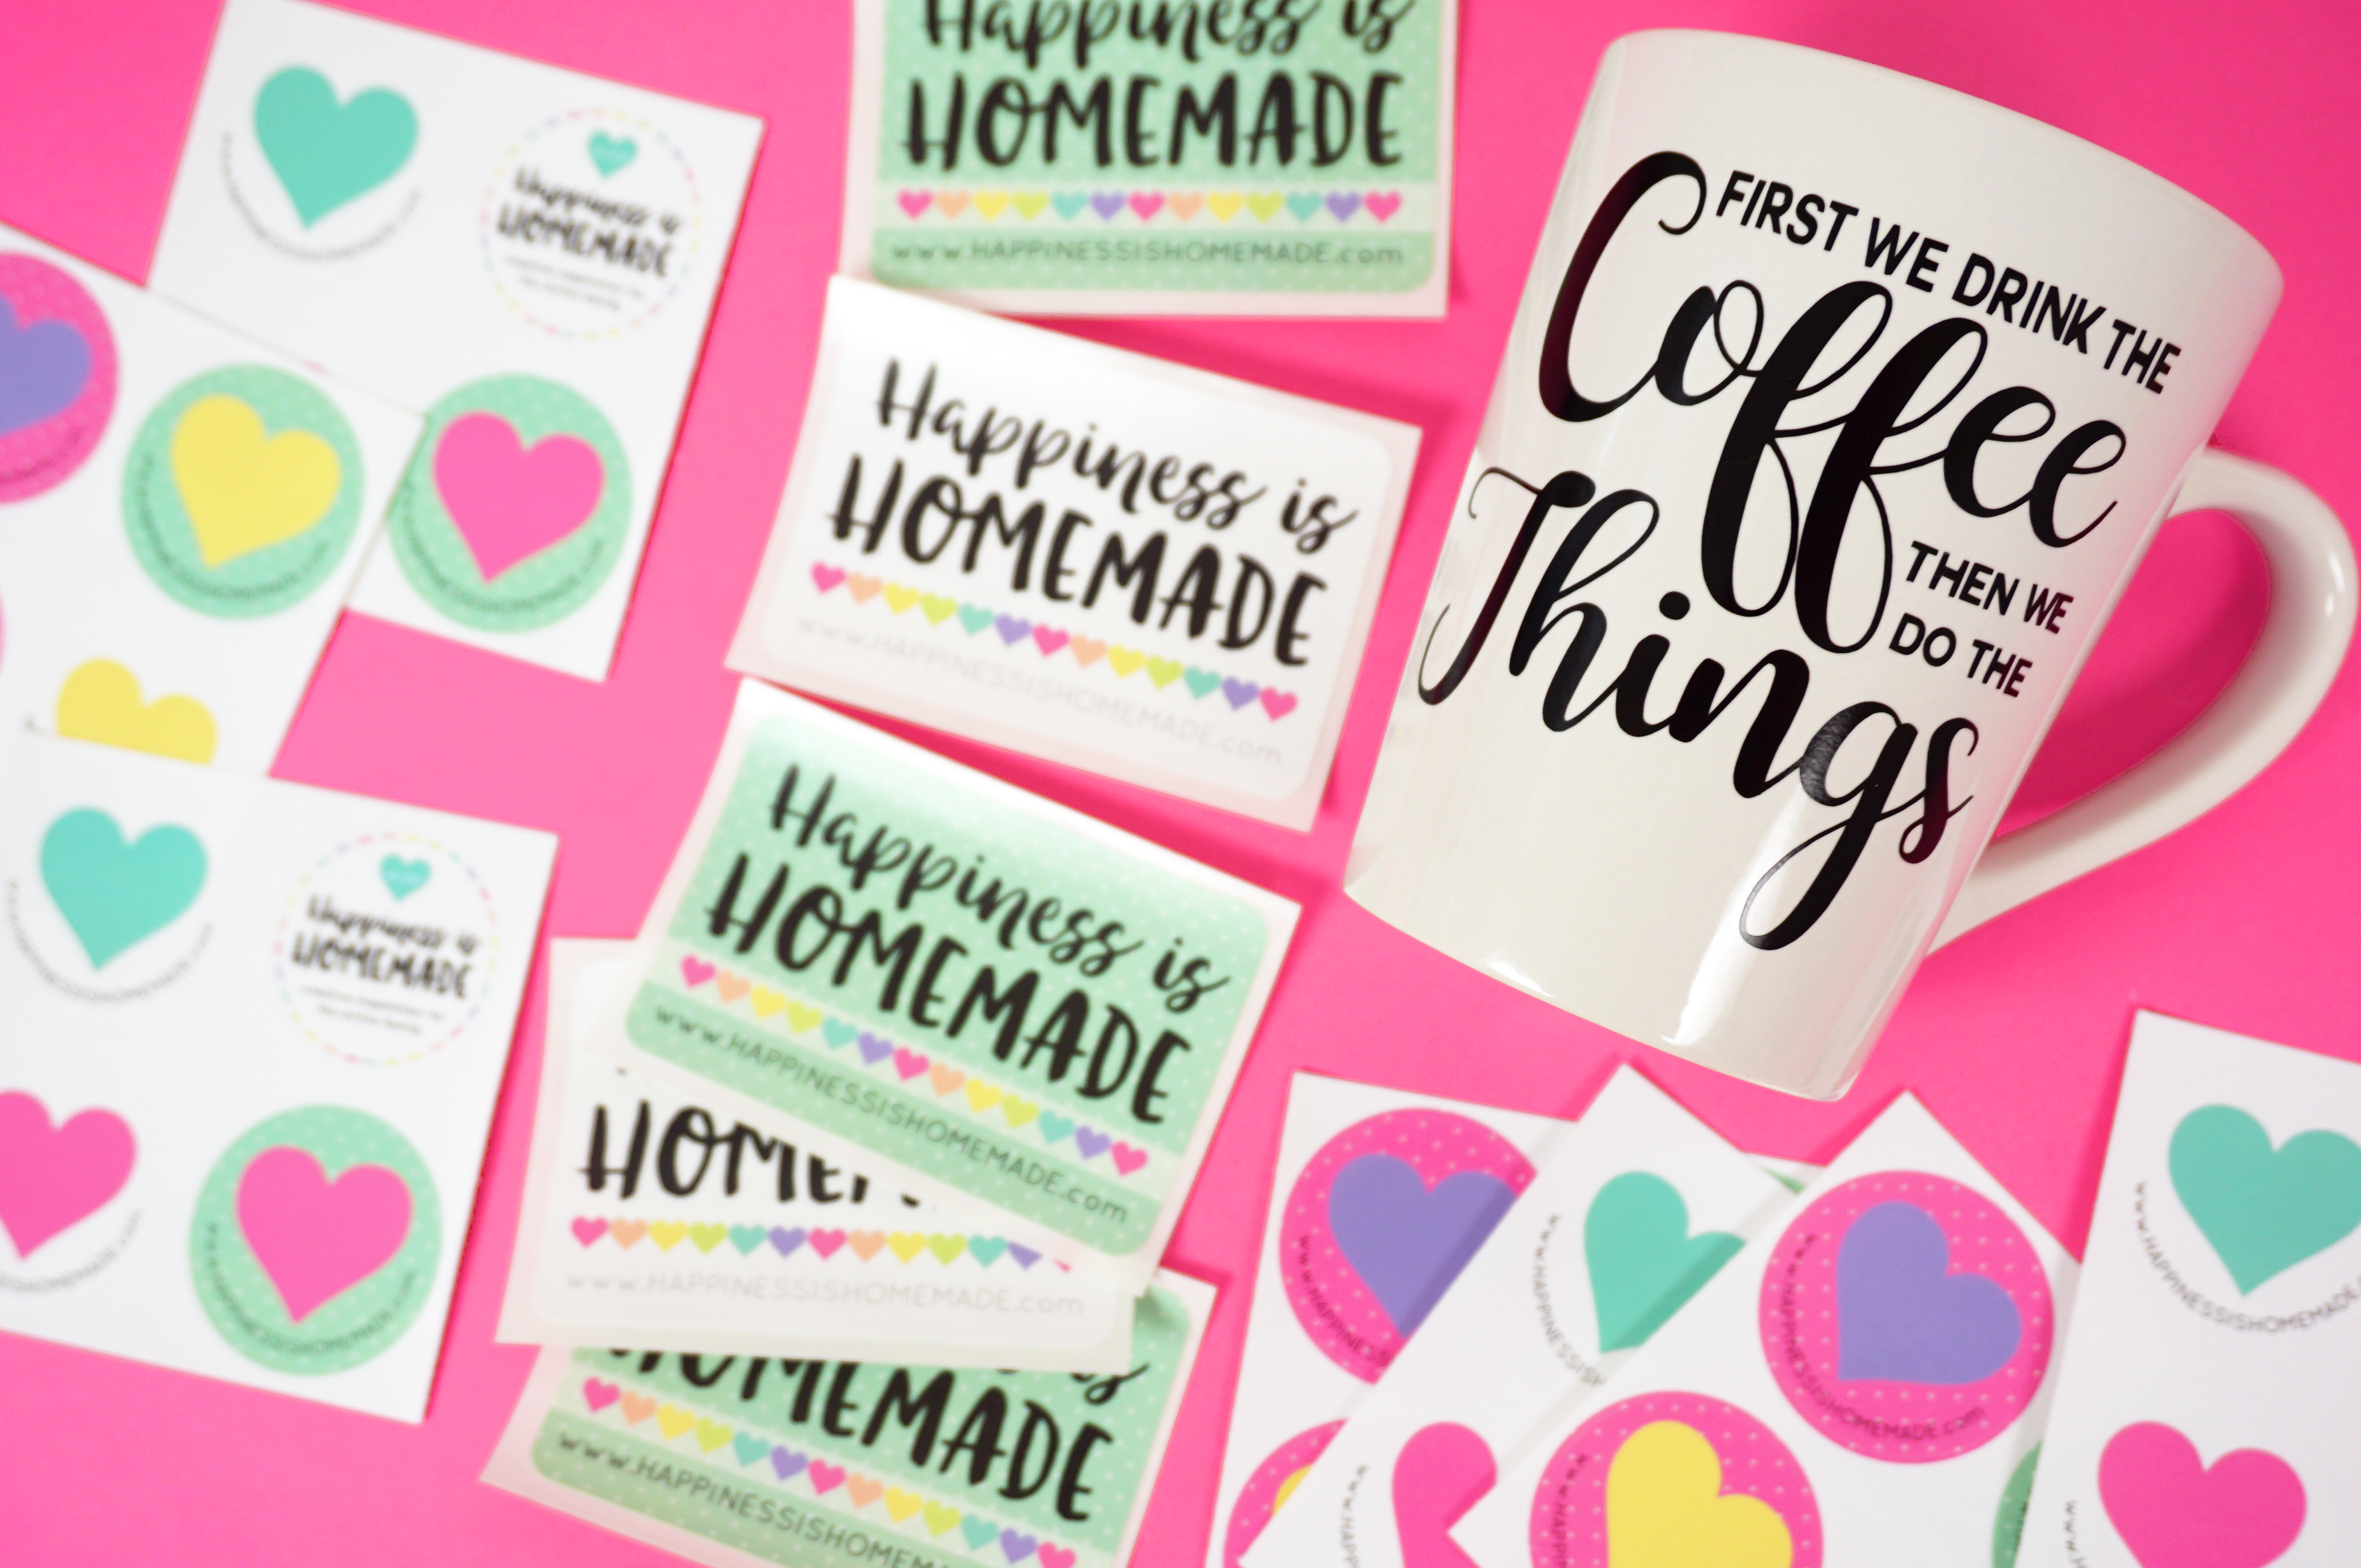 how to establish your brand identity happiness is homemade